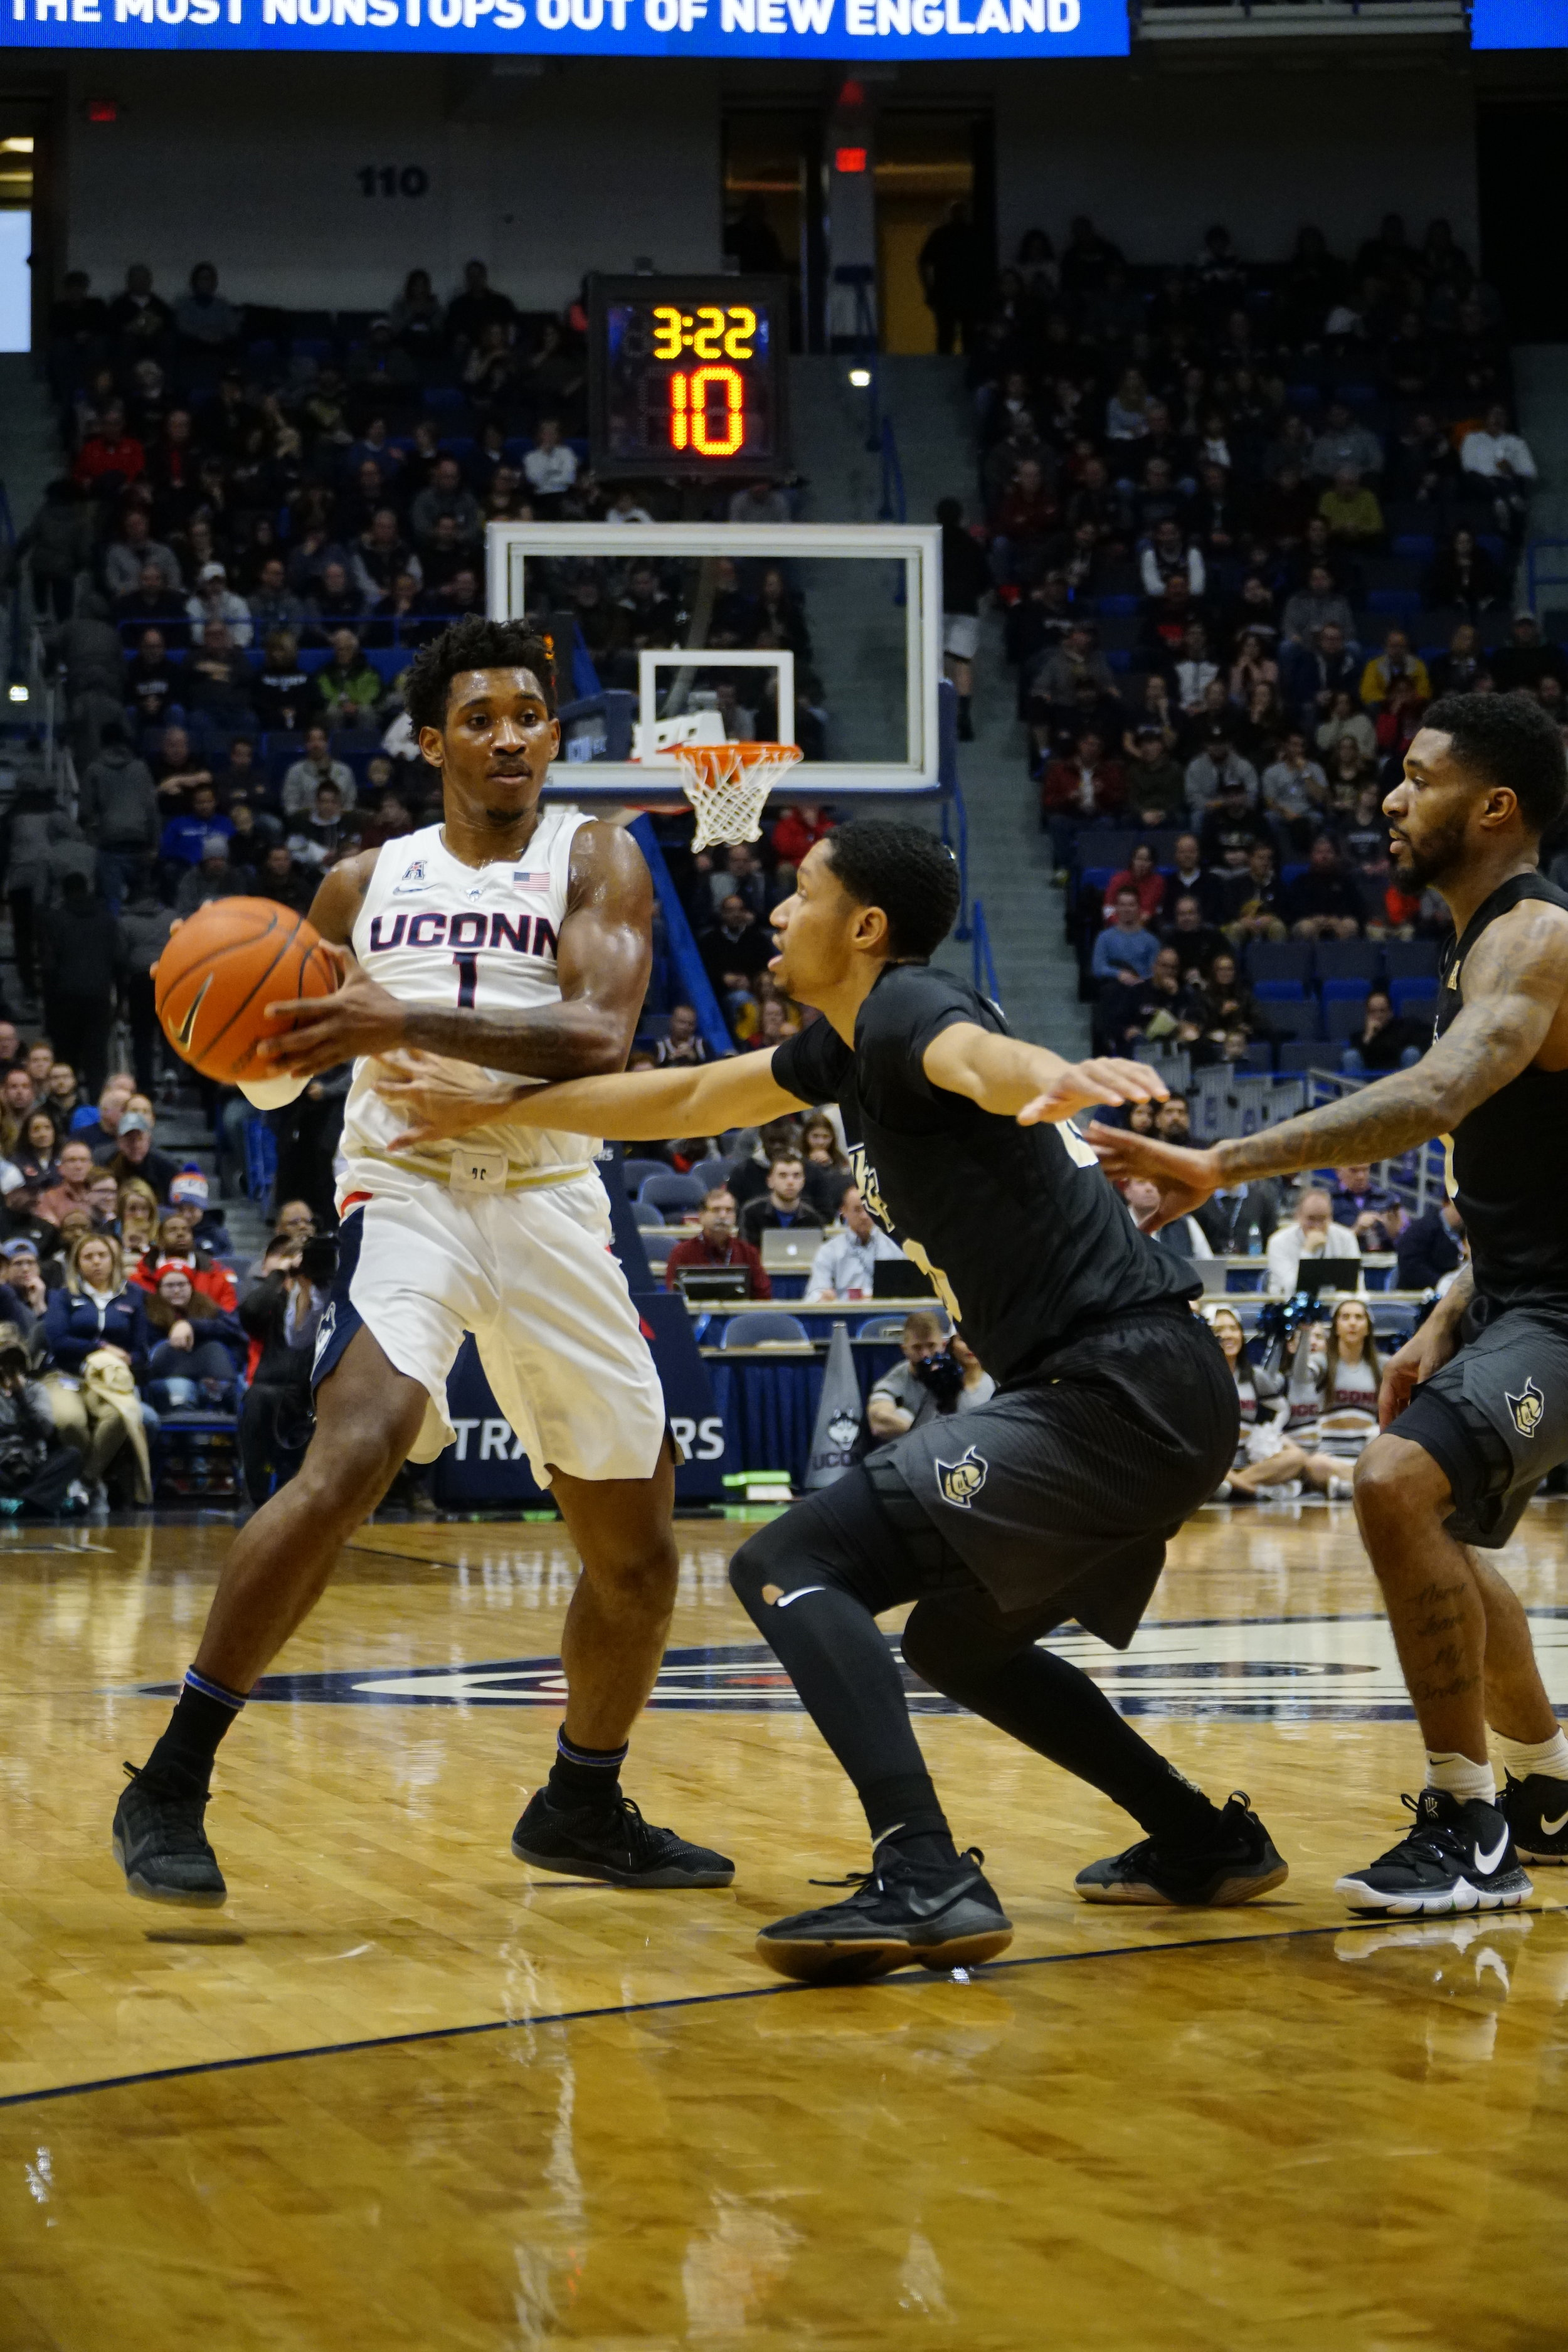 Christian Vital has been a bright spot for the Huskies with his tenacity. Photo by Eric Wang/The Daily Campus